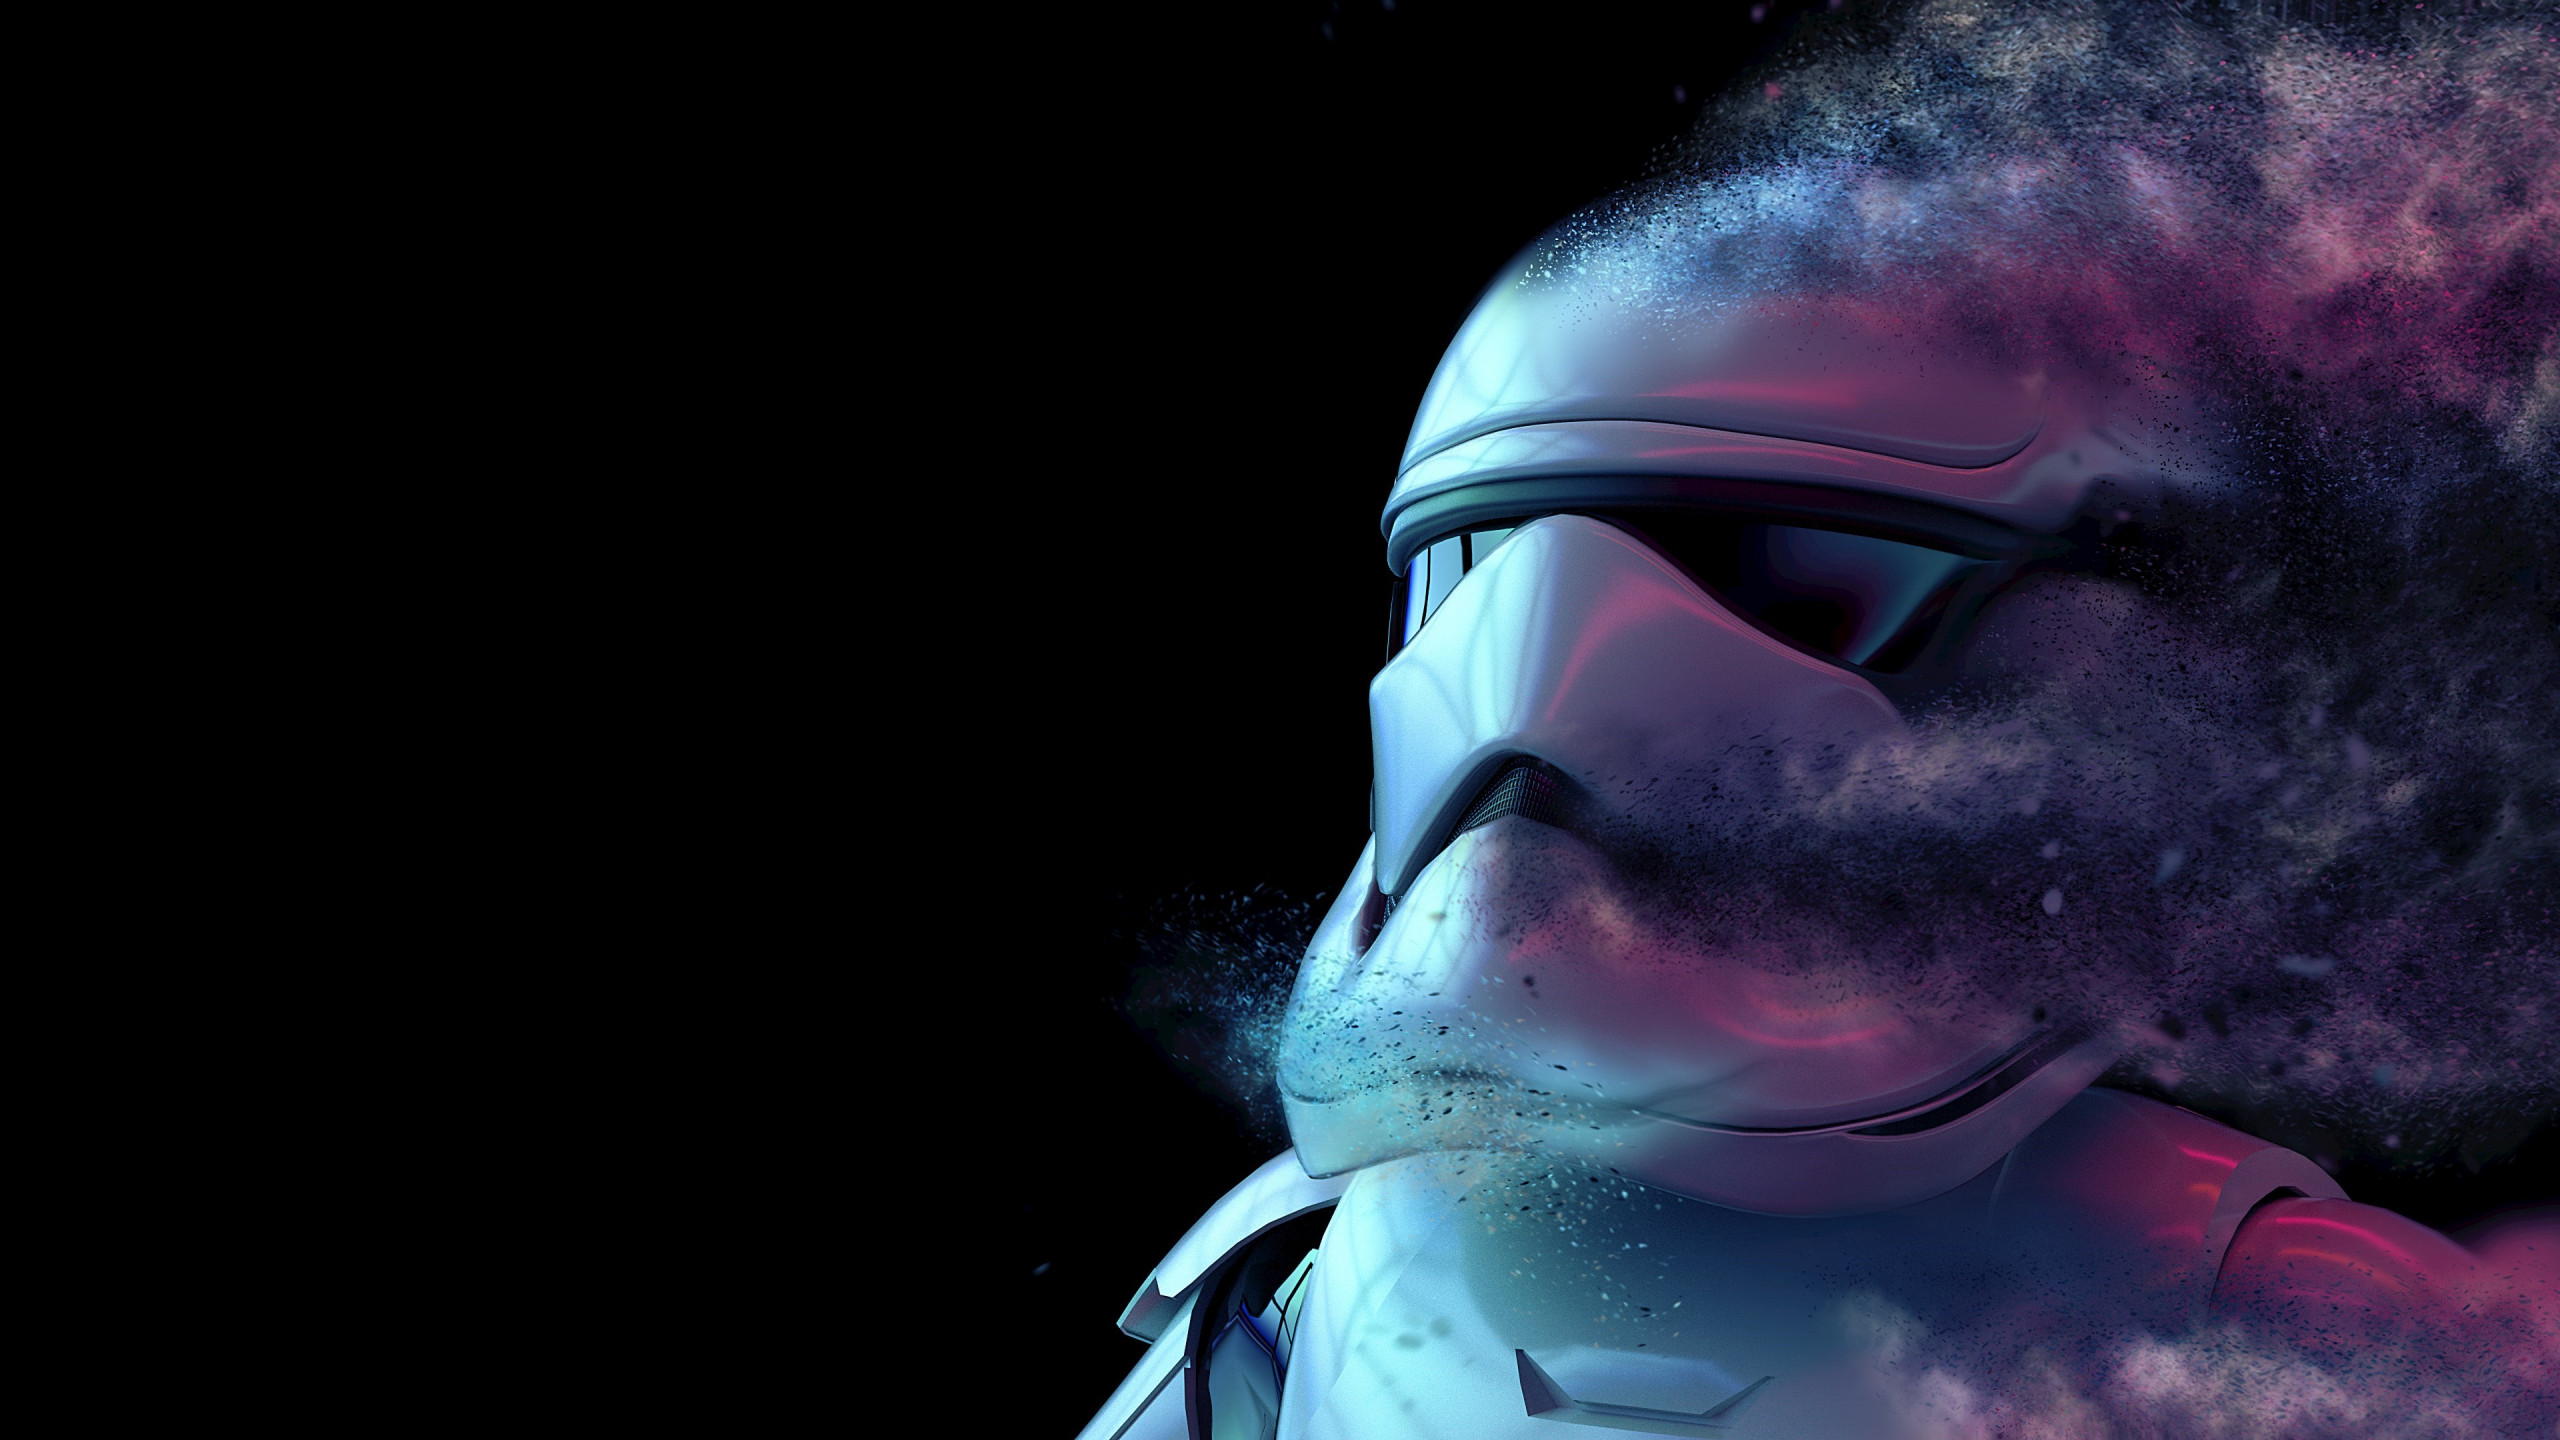 Download Wallpaper Storm Trooper From Star Wars 2560x1440